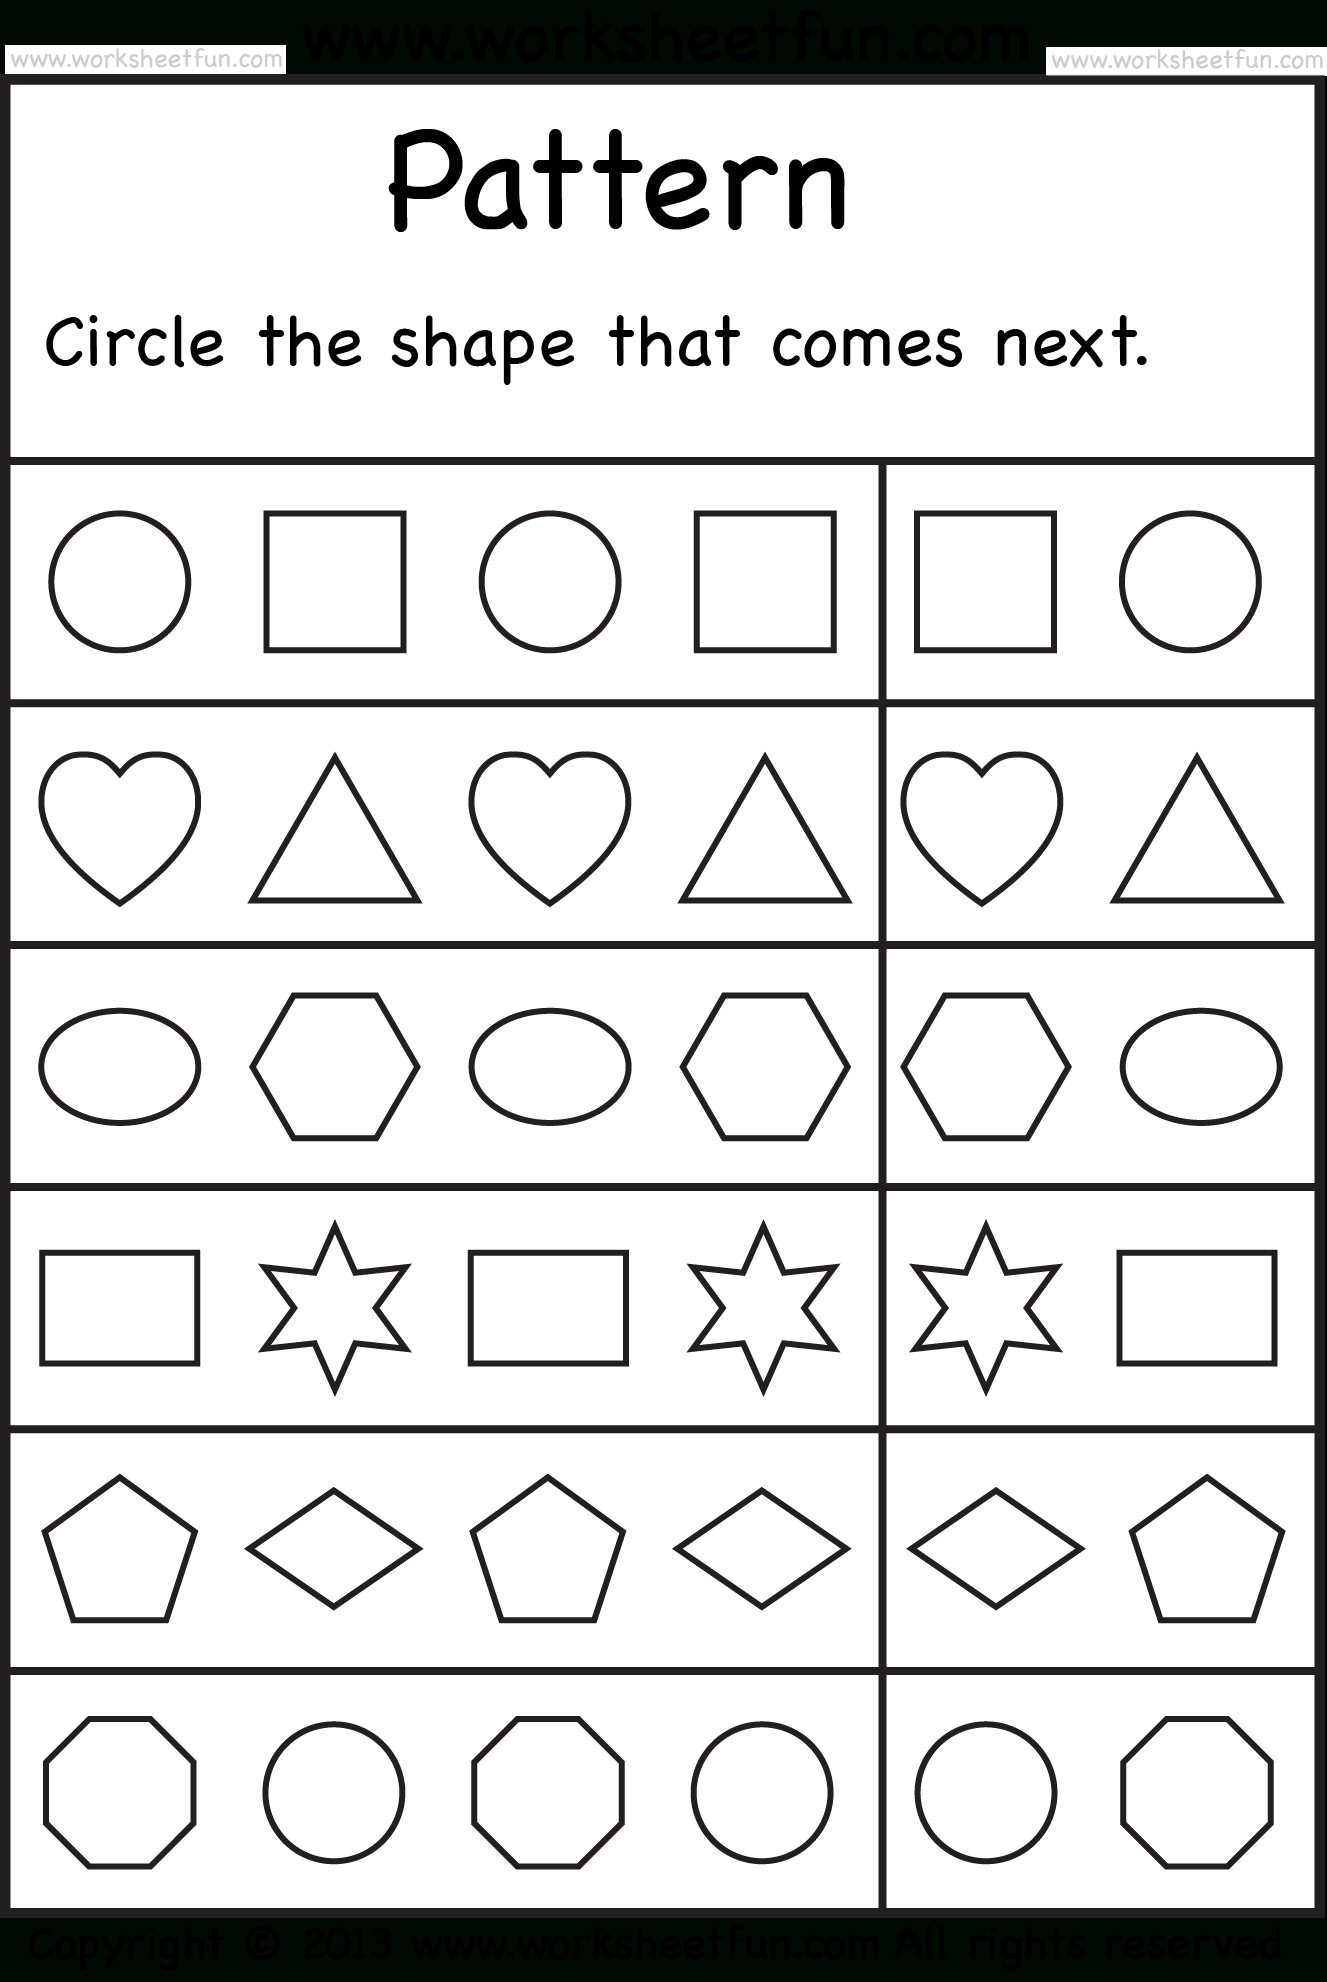 Free Printable Worksheets – Worksheetfun / Free Printable - Free Printable Preschool Worksheets